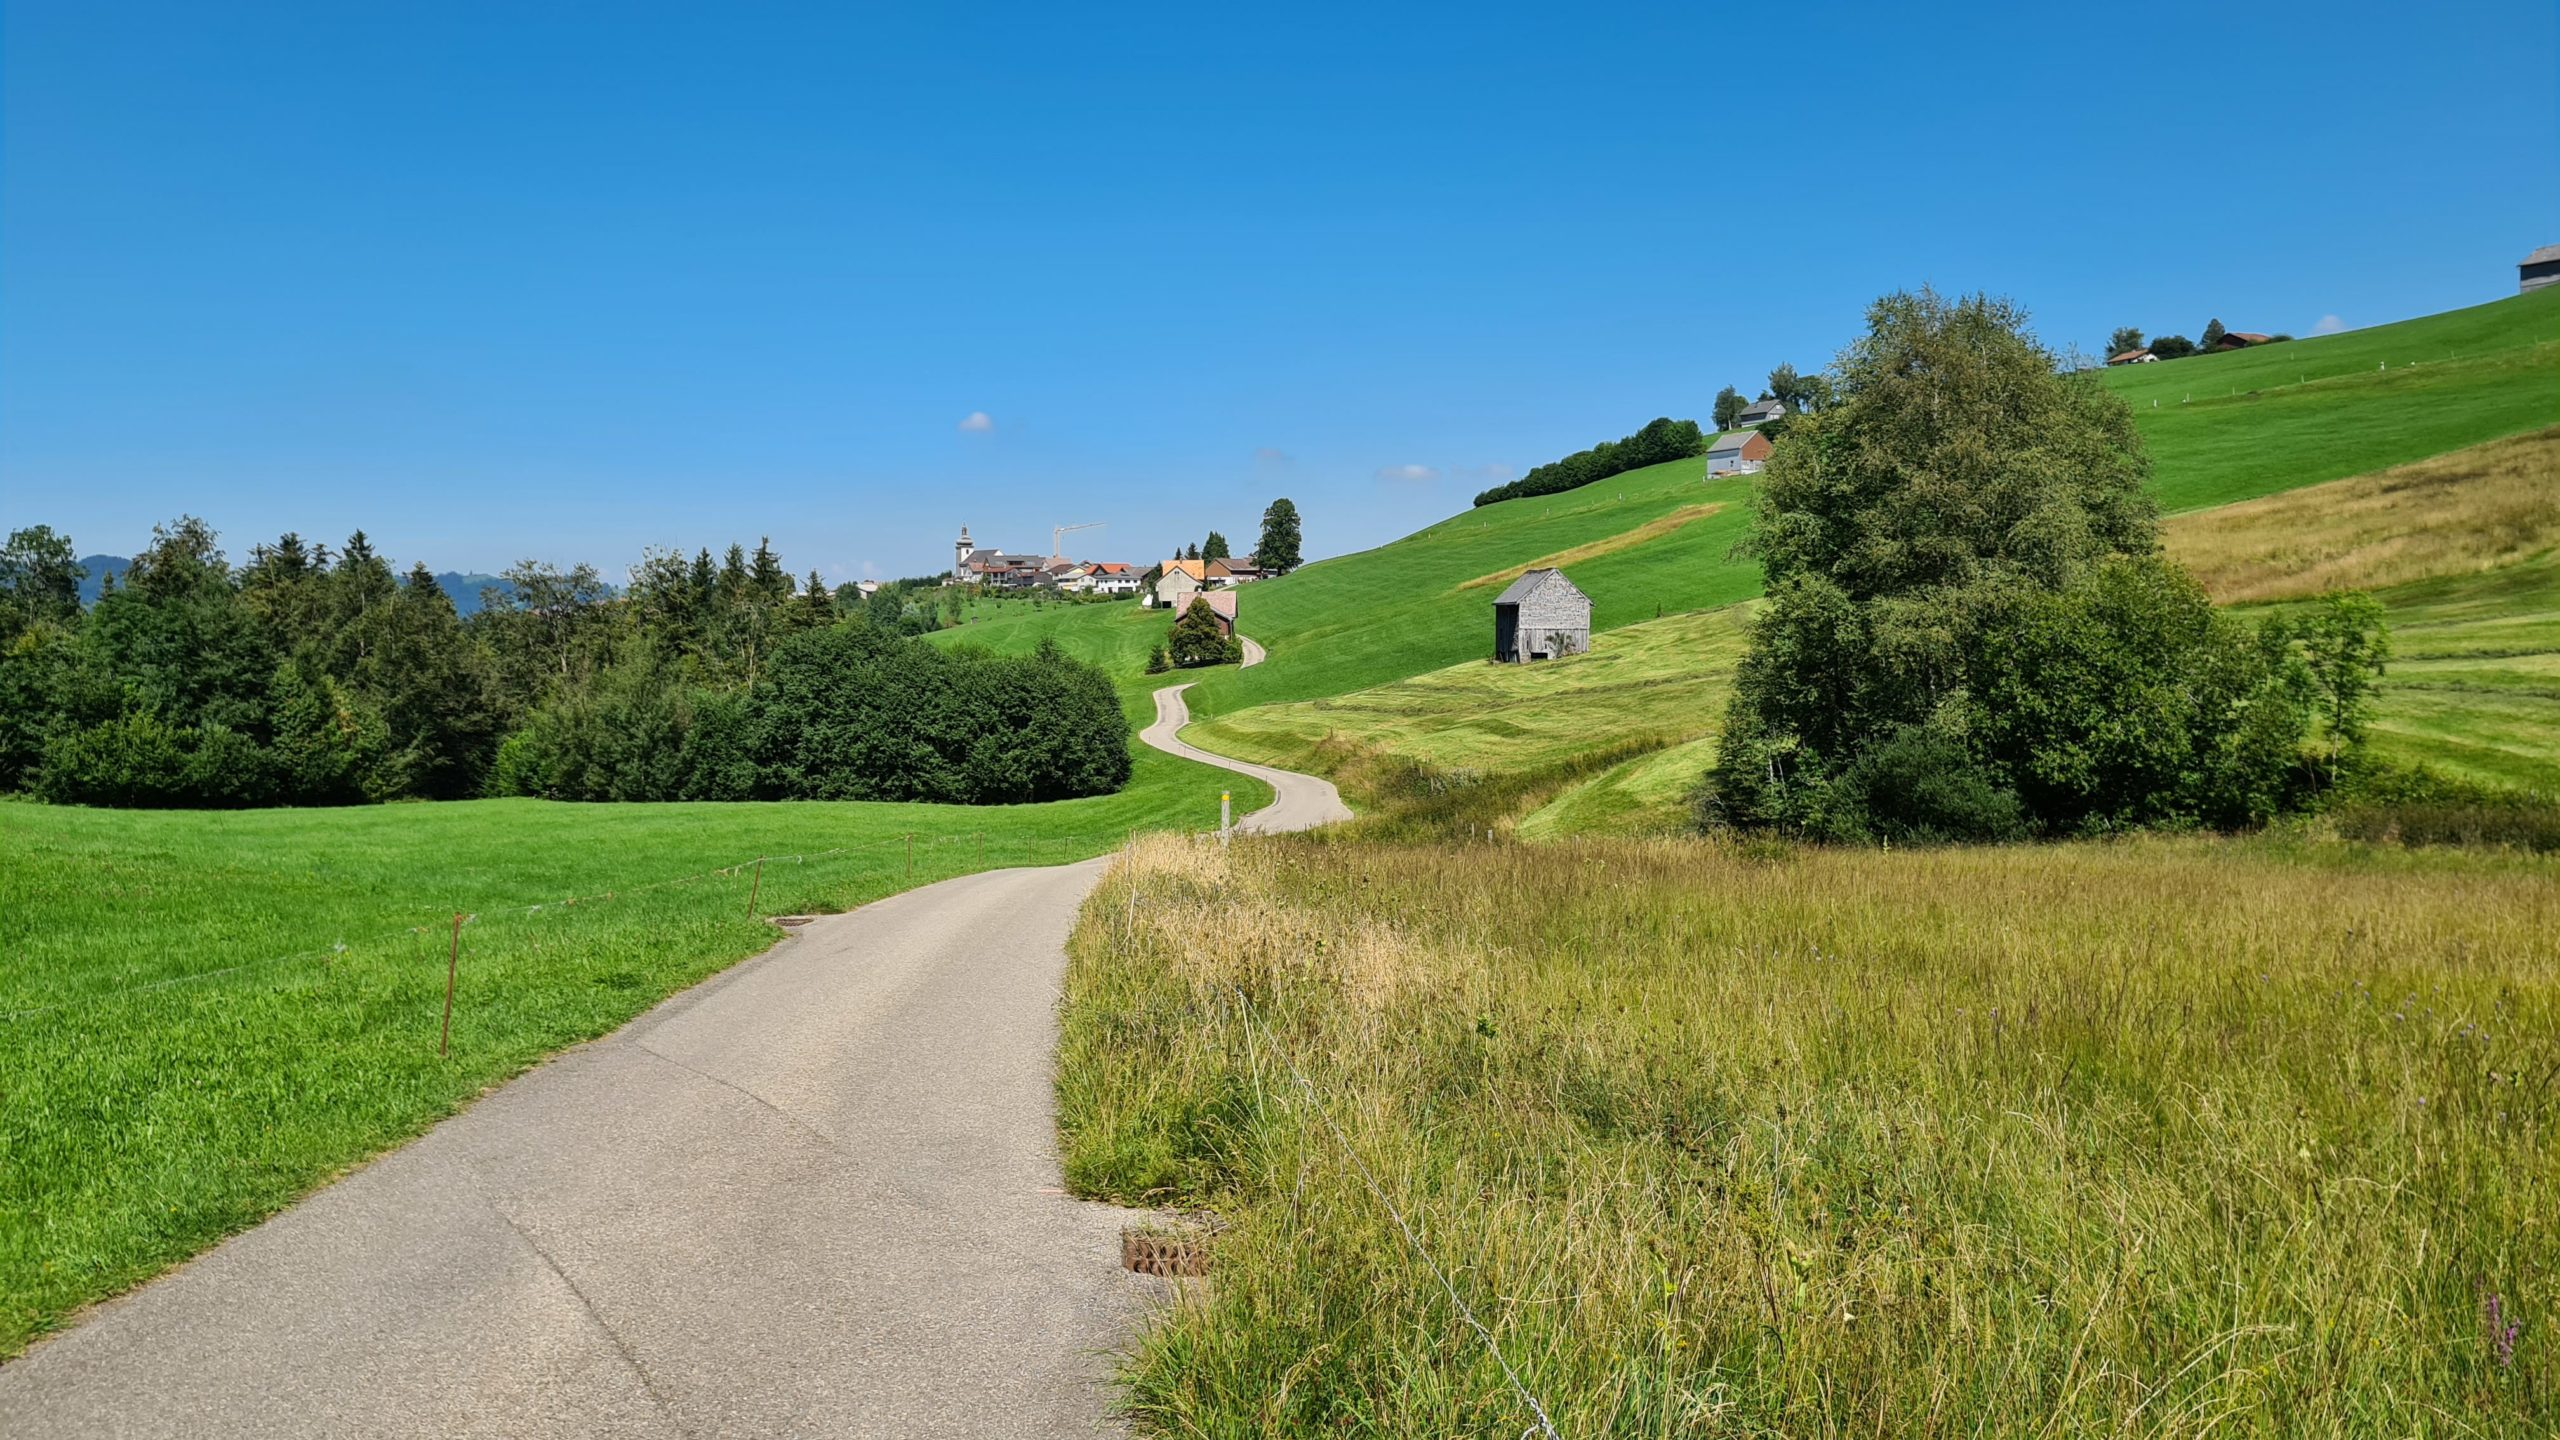 Path weaving through lush landscape with a village in the far distance and clear blue sky